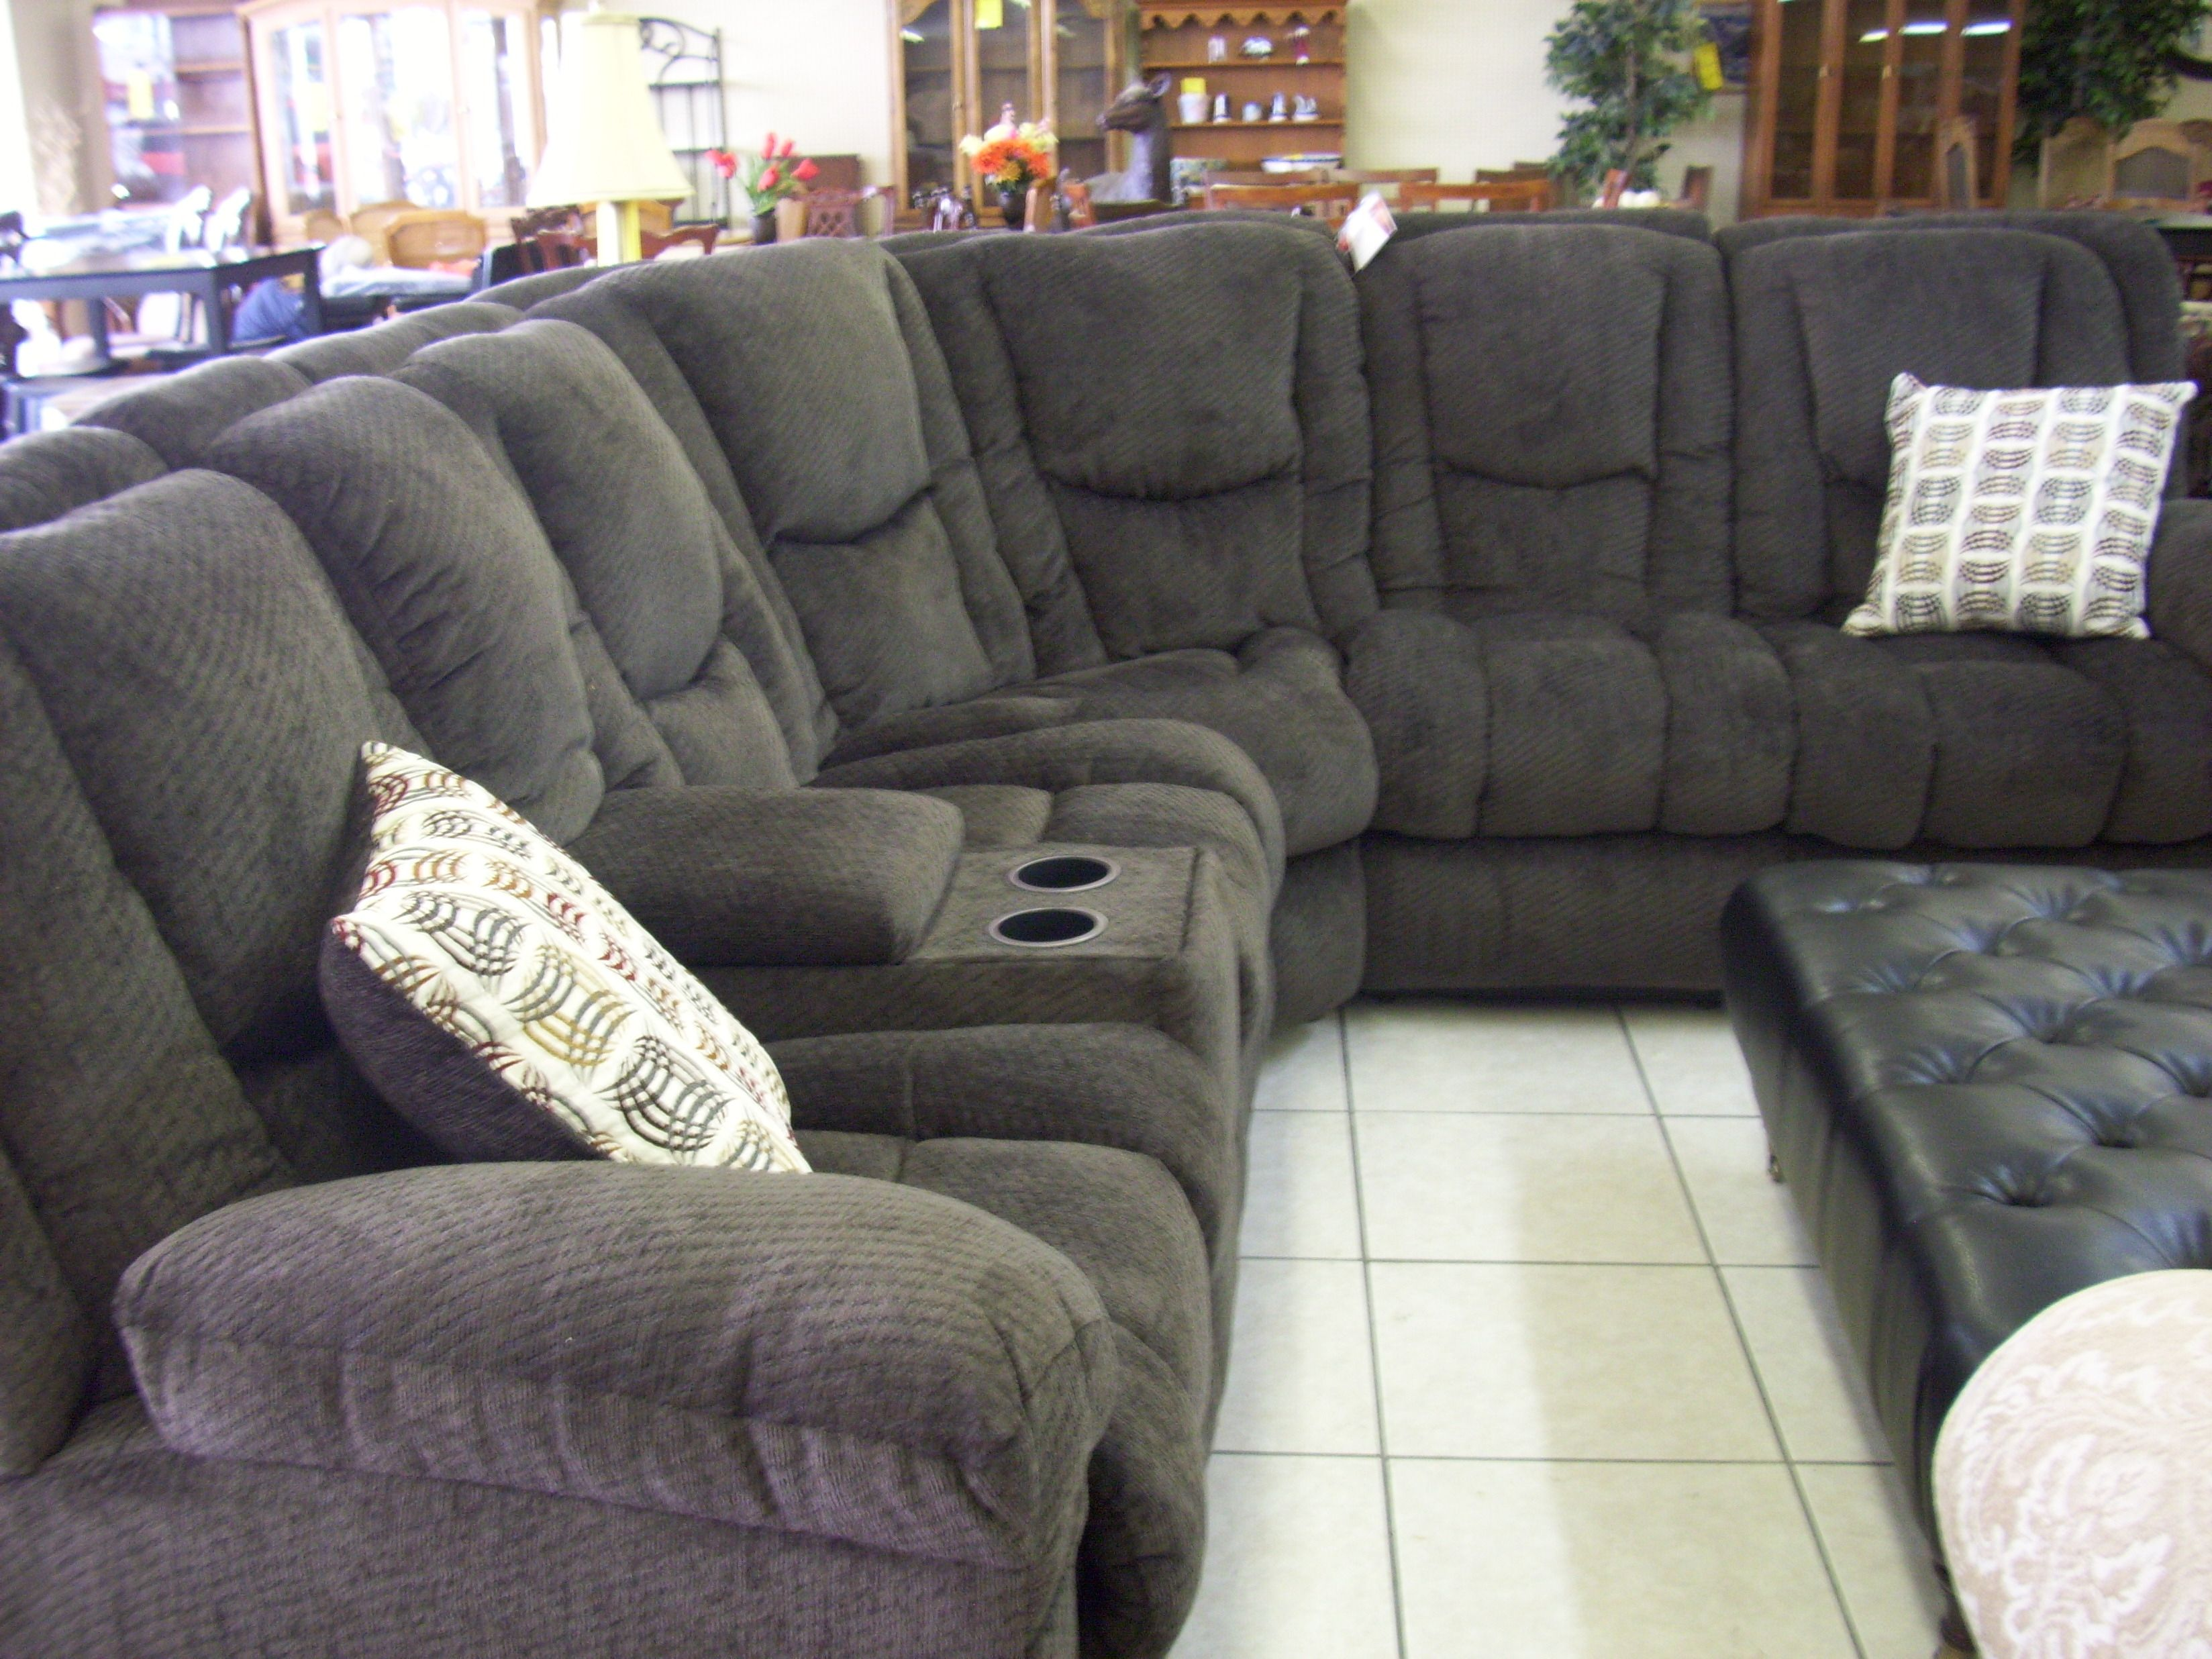 Furniture Fantastic Sectional Couches With Recliners For Your